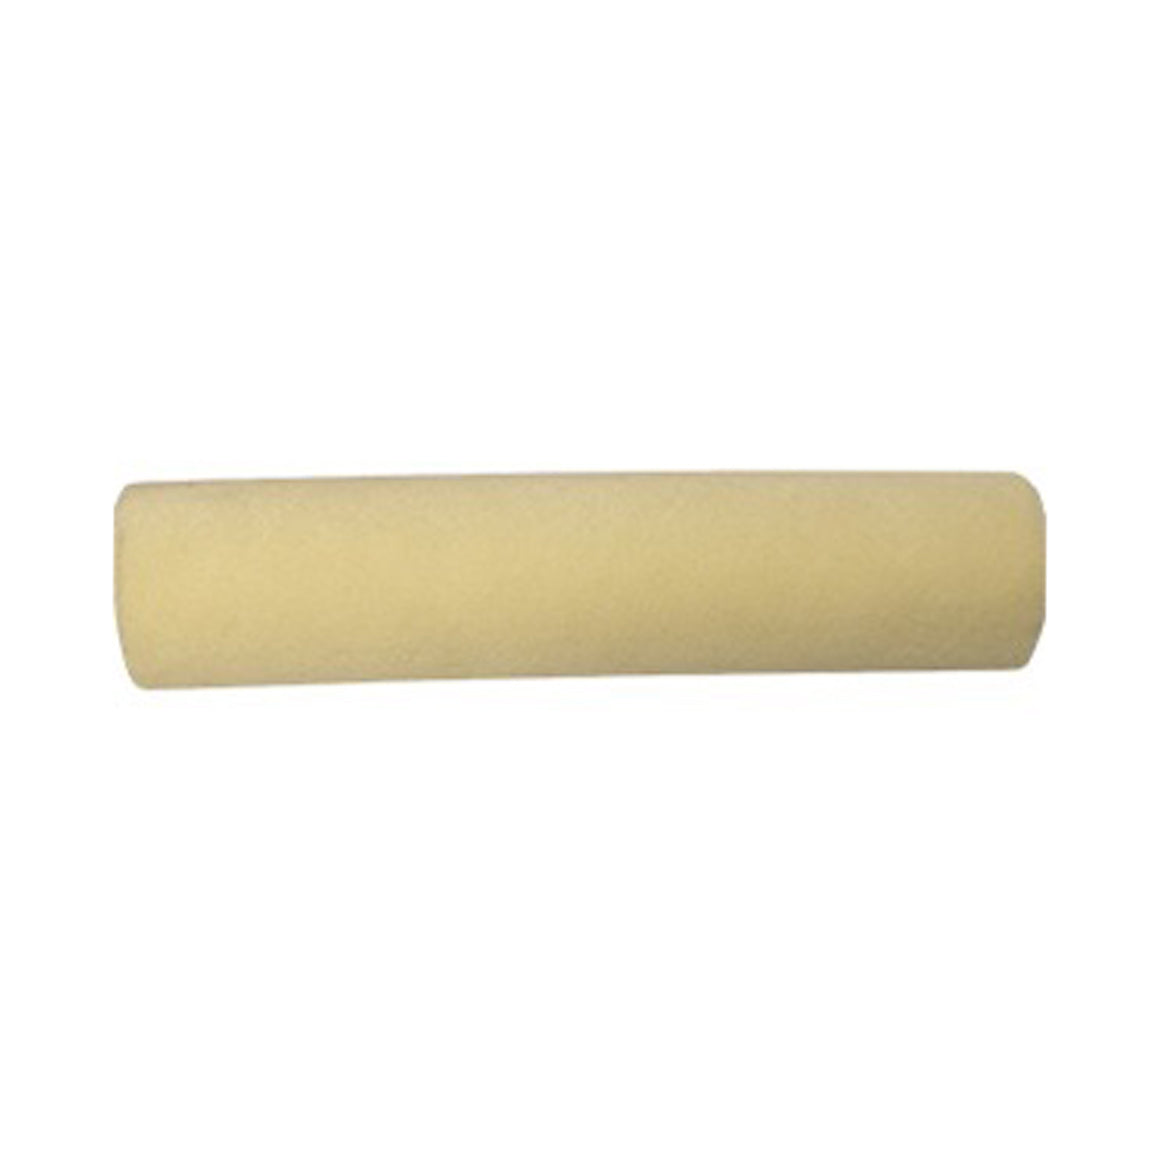 "Dynamic mohair 9"" x 3/16"" roller cover, available at Clement's Paint in Austin, TX."